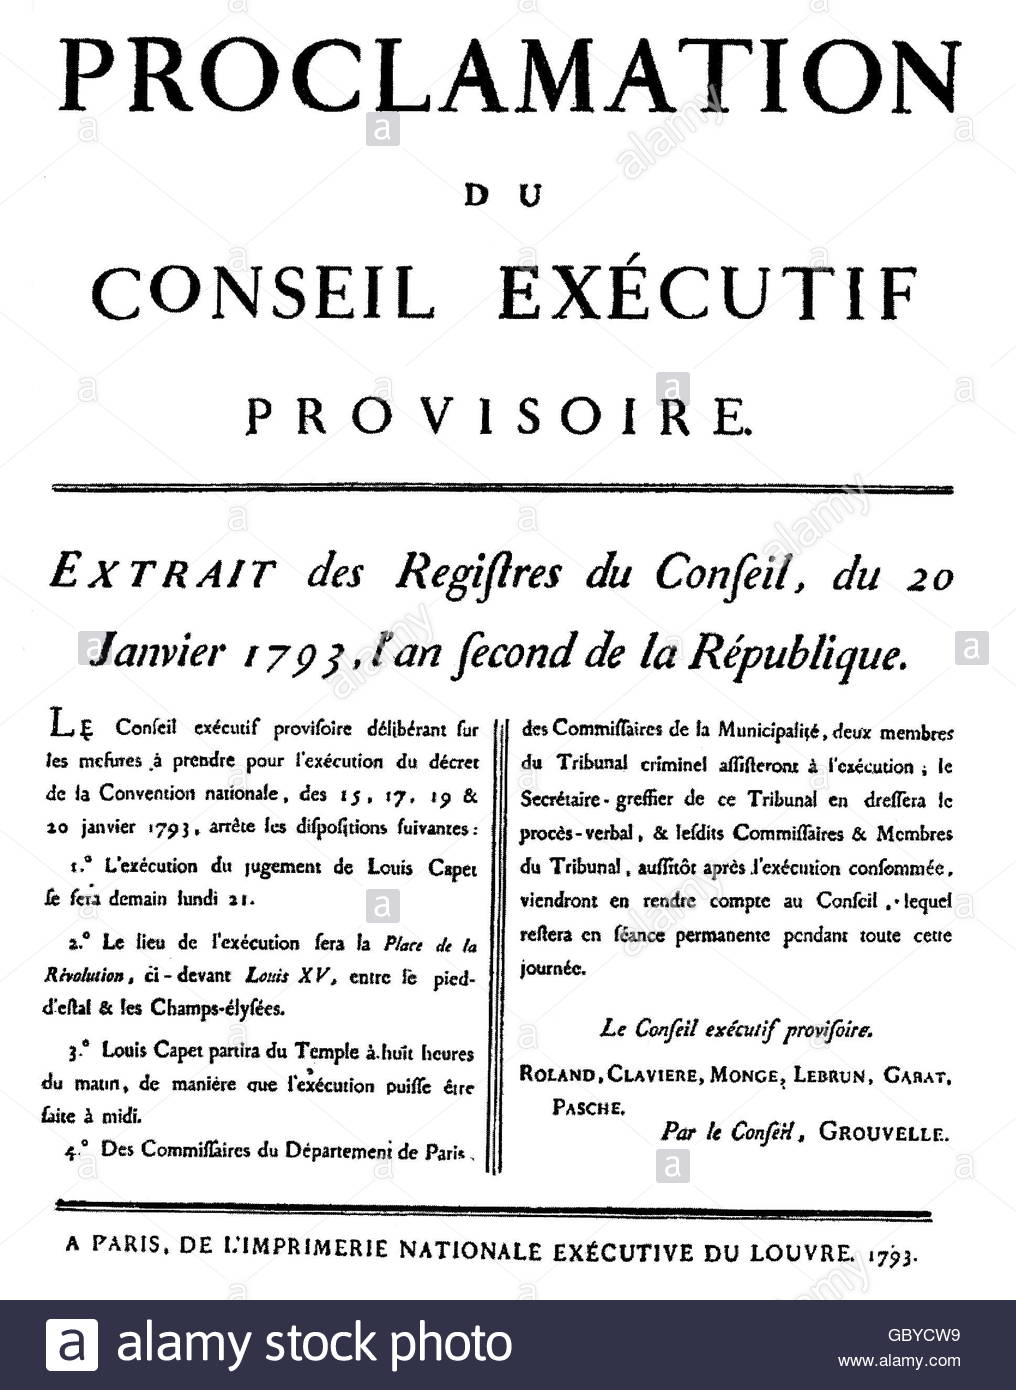 geography / travel, France, revolution 1789-1799, proclamation of the provisional executive committee for the execution - Stock Image